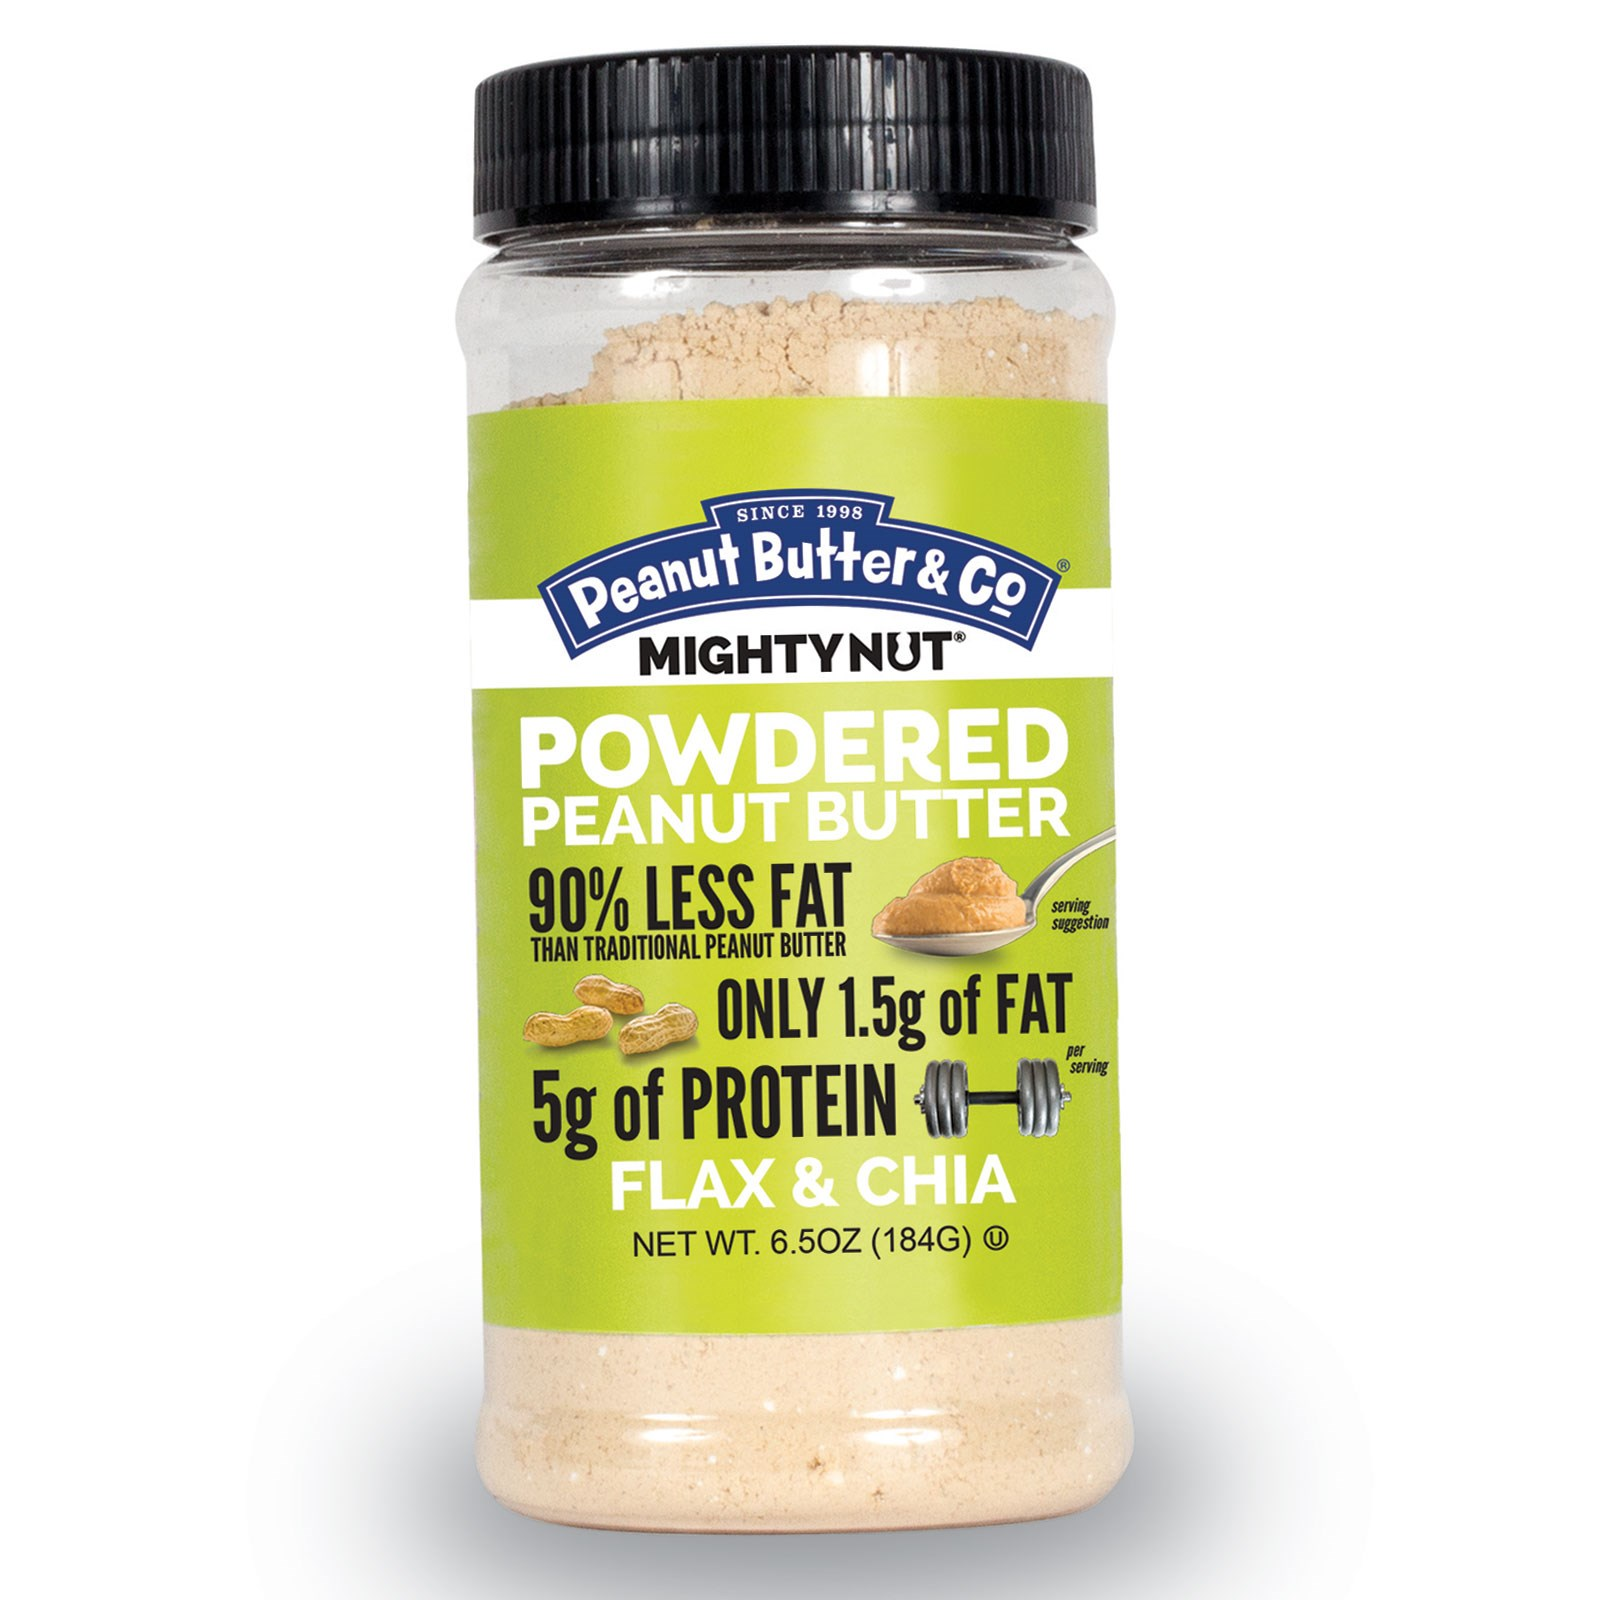 Peanut Butter & Co., Mighty Nut, Powdered Peanut Butter, Flax & Chia, 6.5 oz. (pack of 3)